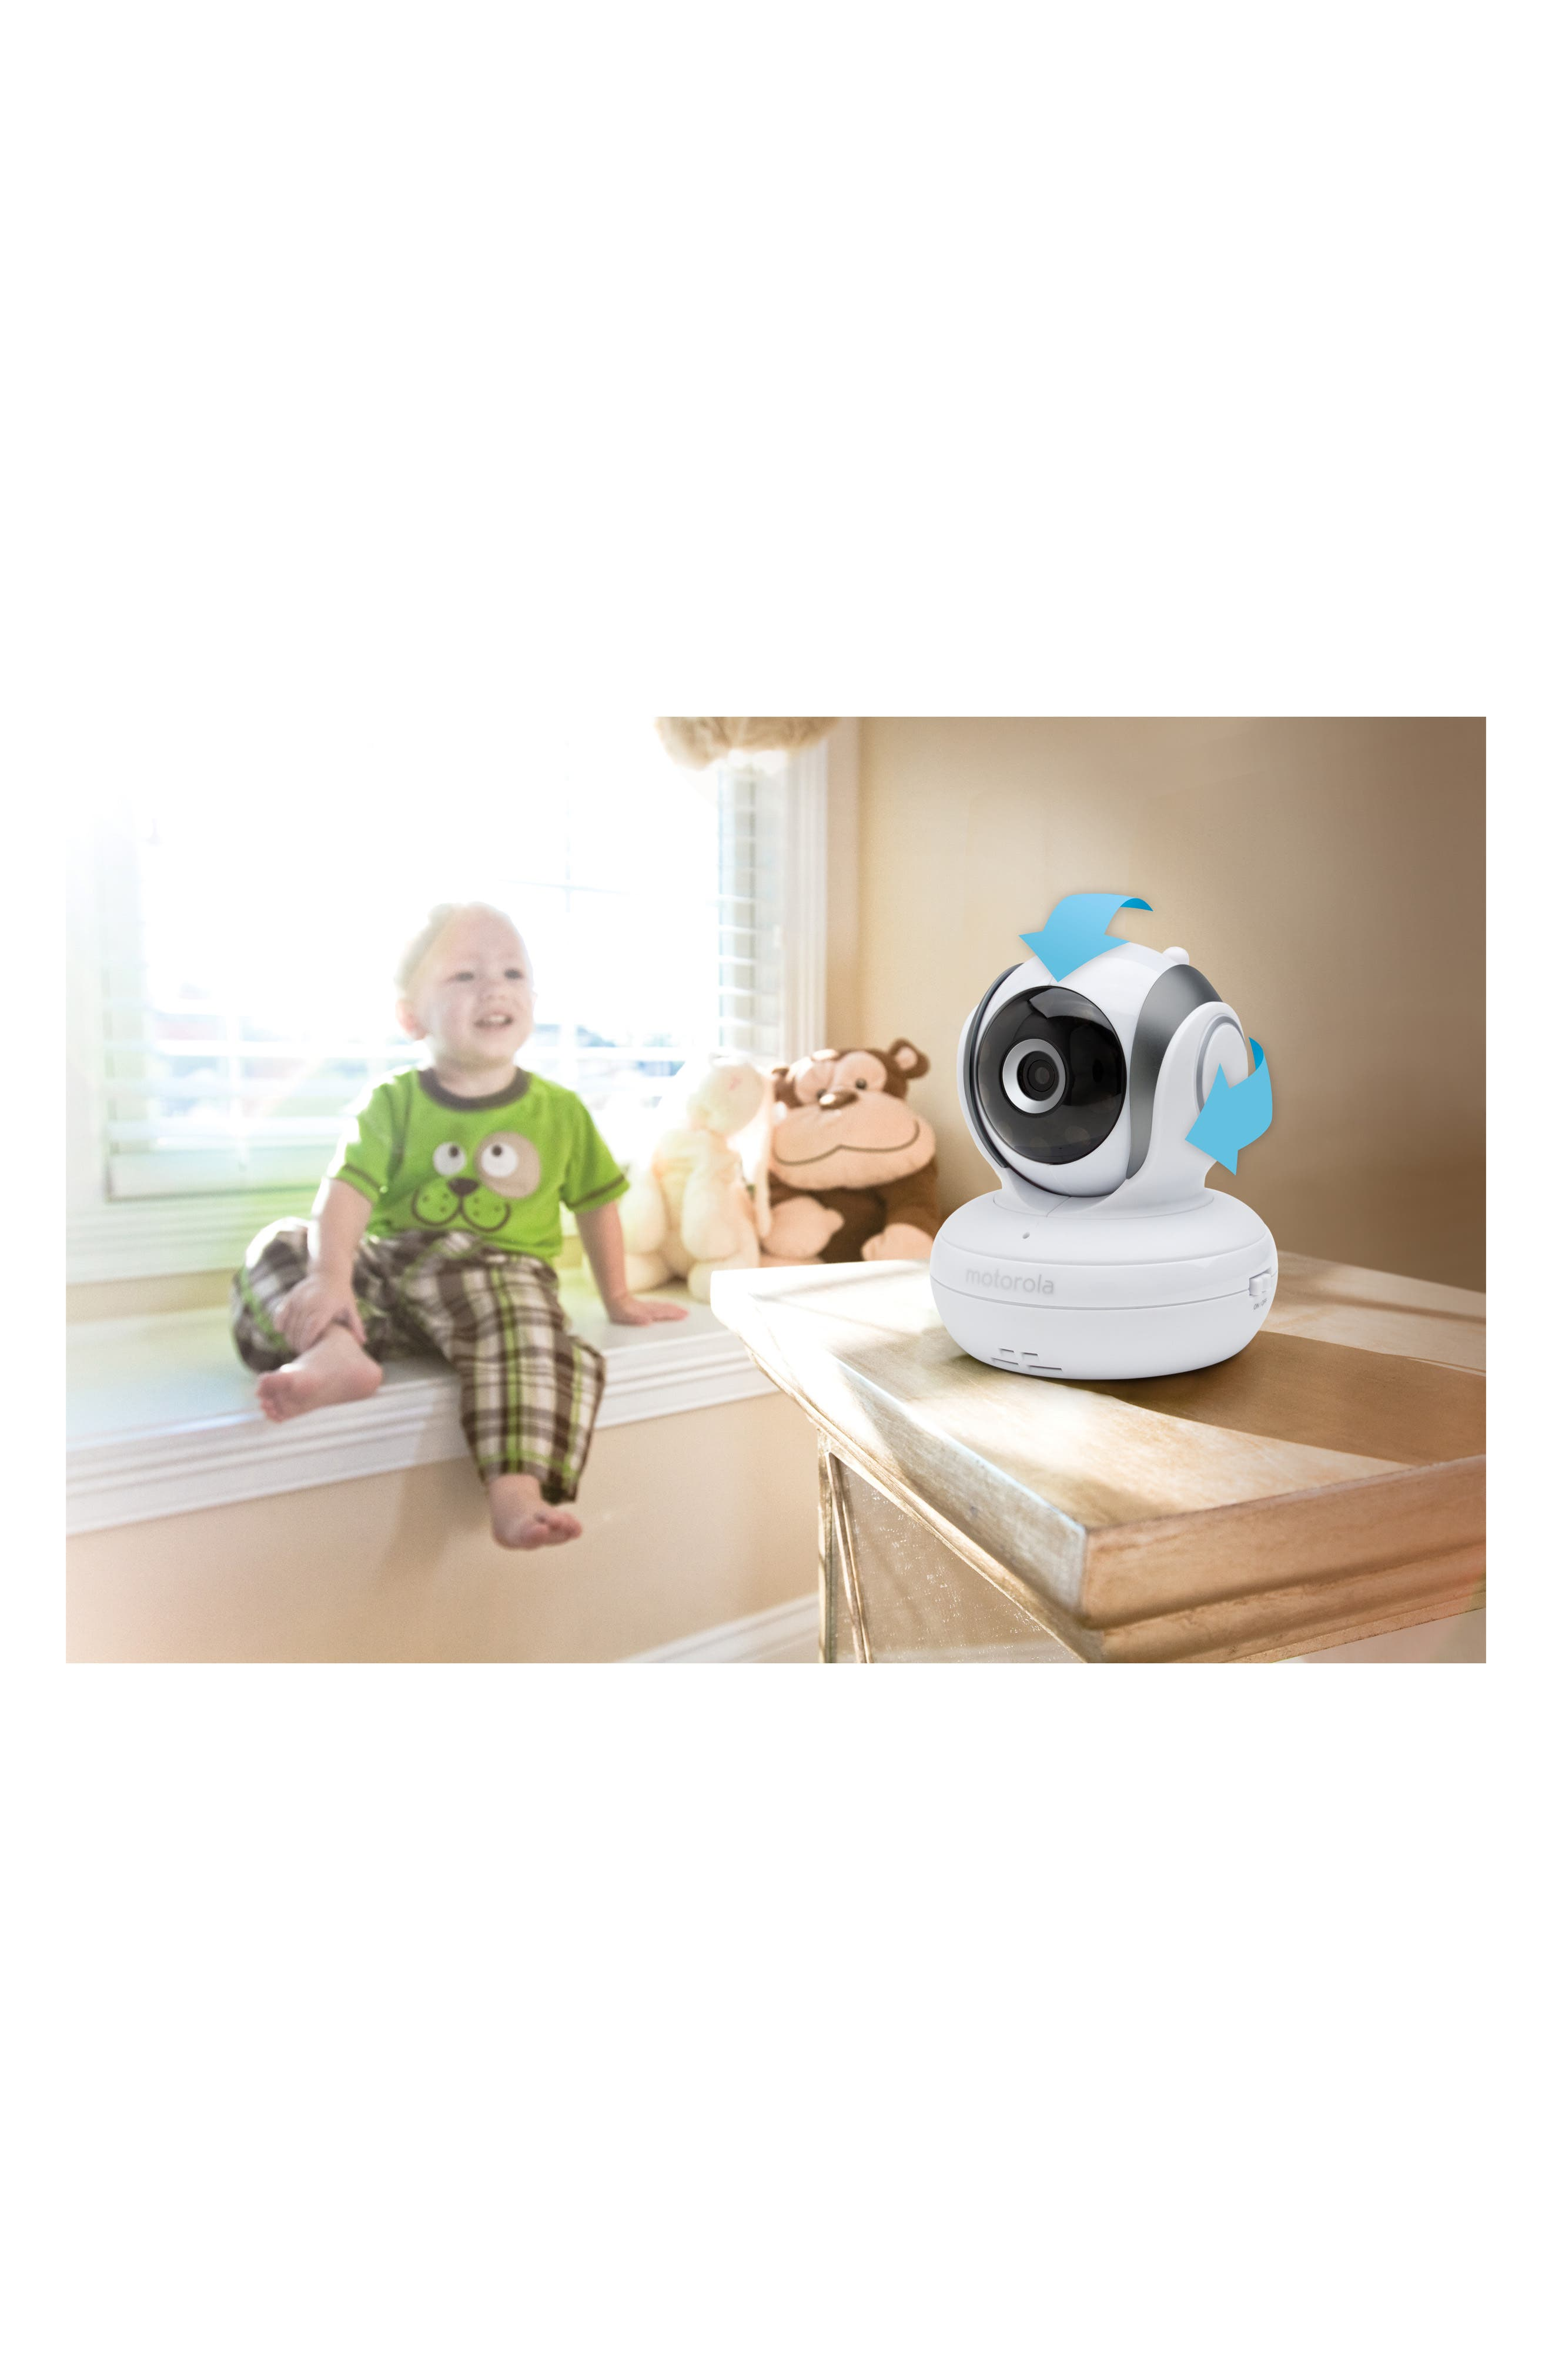 MBP36S Wireless Digital Infrared Video Baby Monitor,                             Alternate thumbnail 6, color,                             100